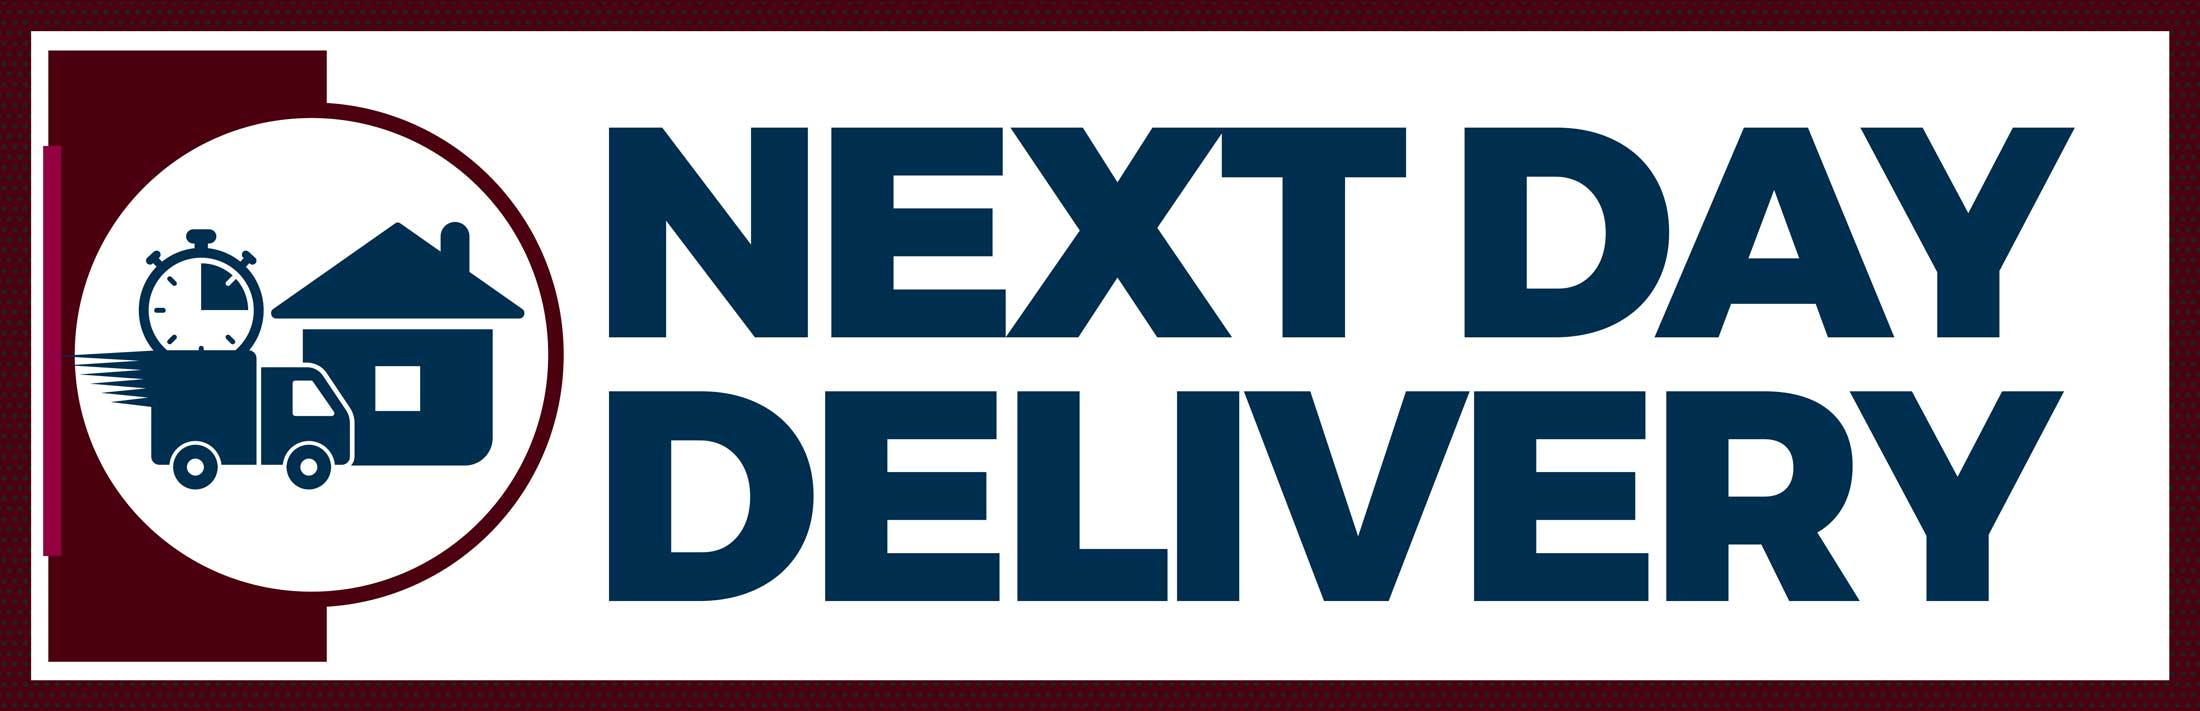 Next Day Delivery 7 Days a Week